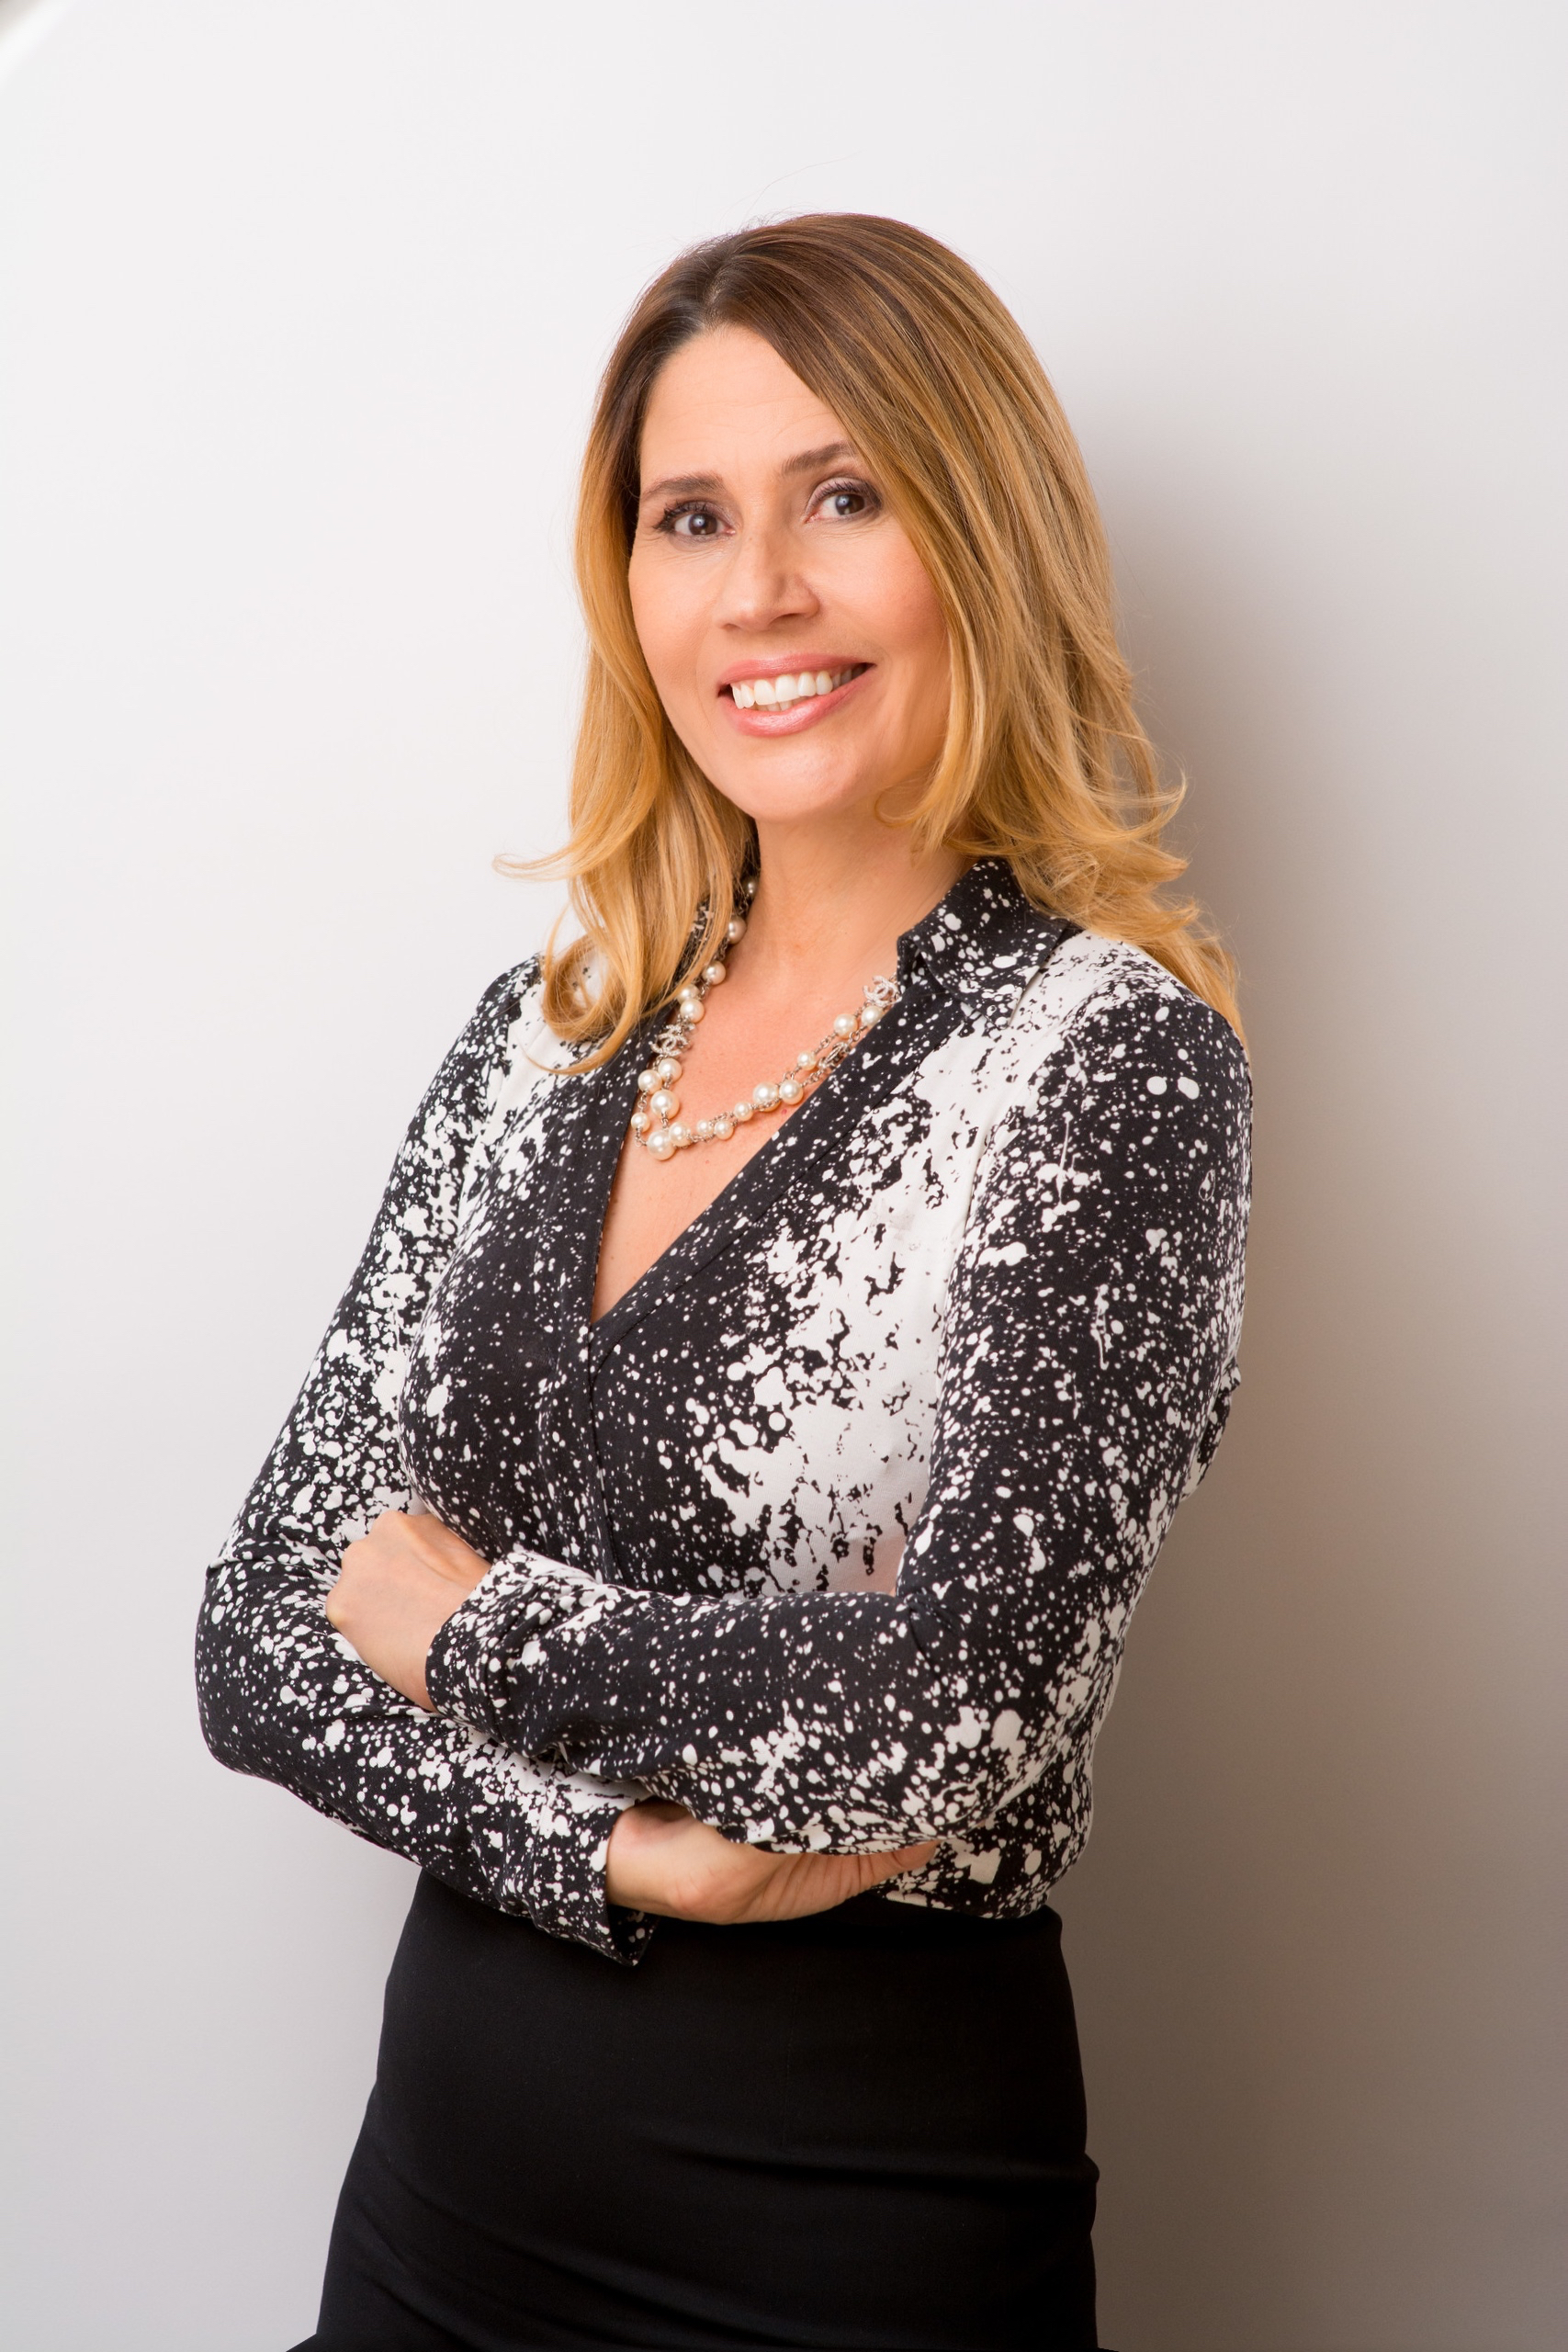 Sonia Summers, ceo and founder of Beauty Barrage.